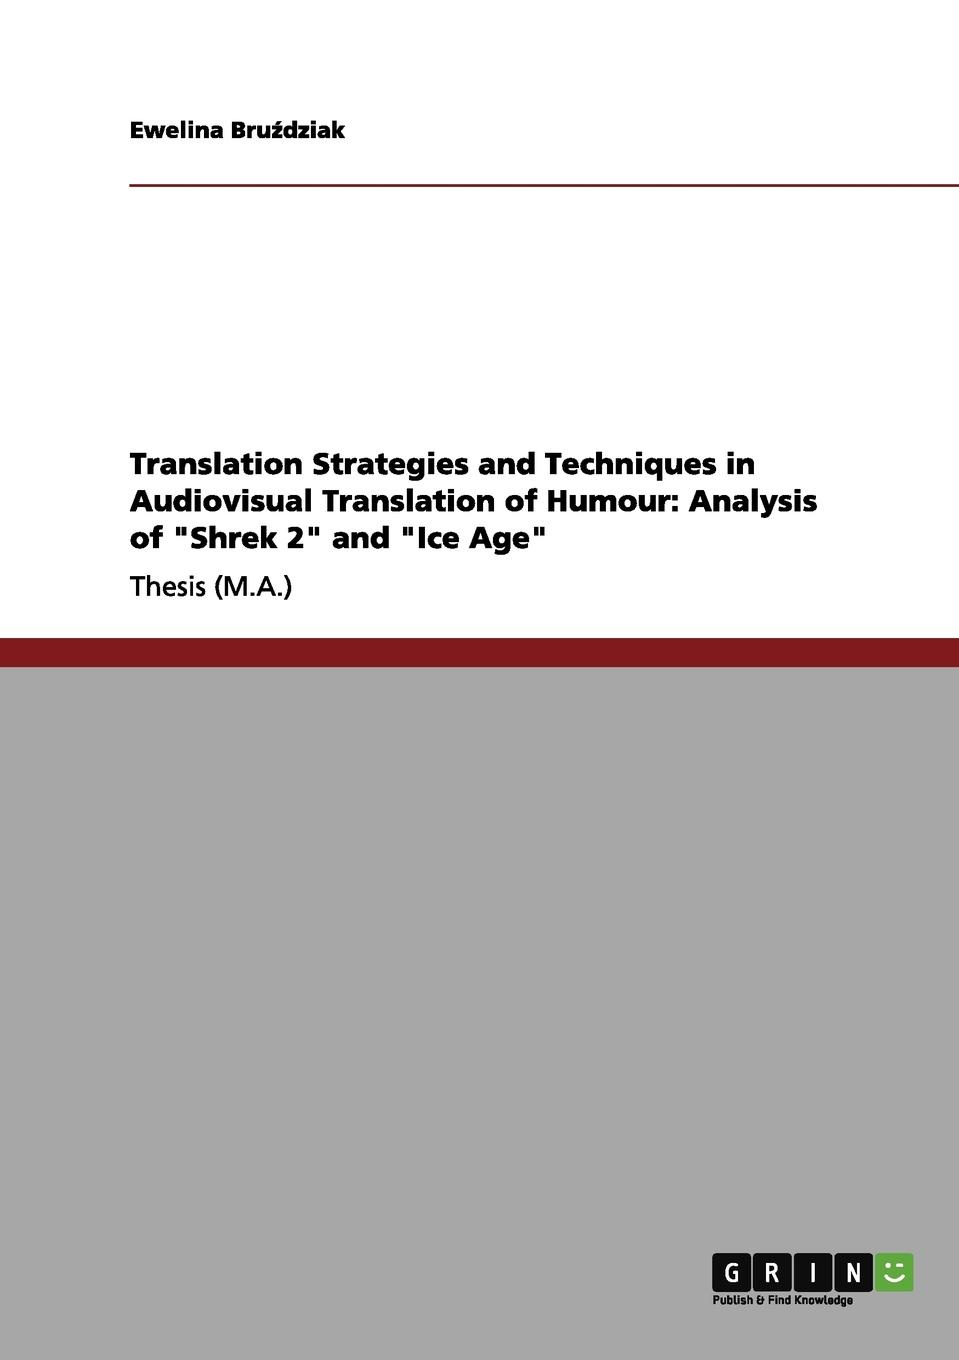 Ewelina Bruździak Translation Strategies and Techniques in Audiovisual Translation of Humour. Analysis of